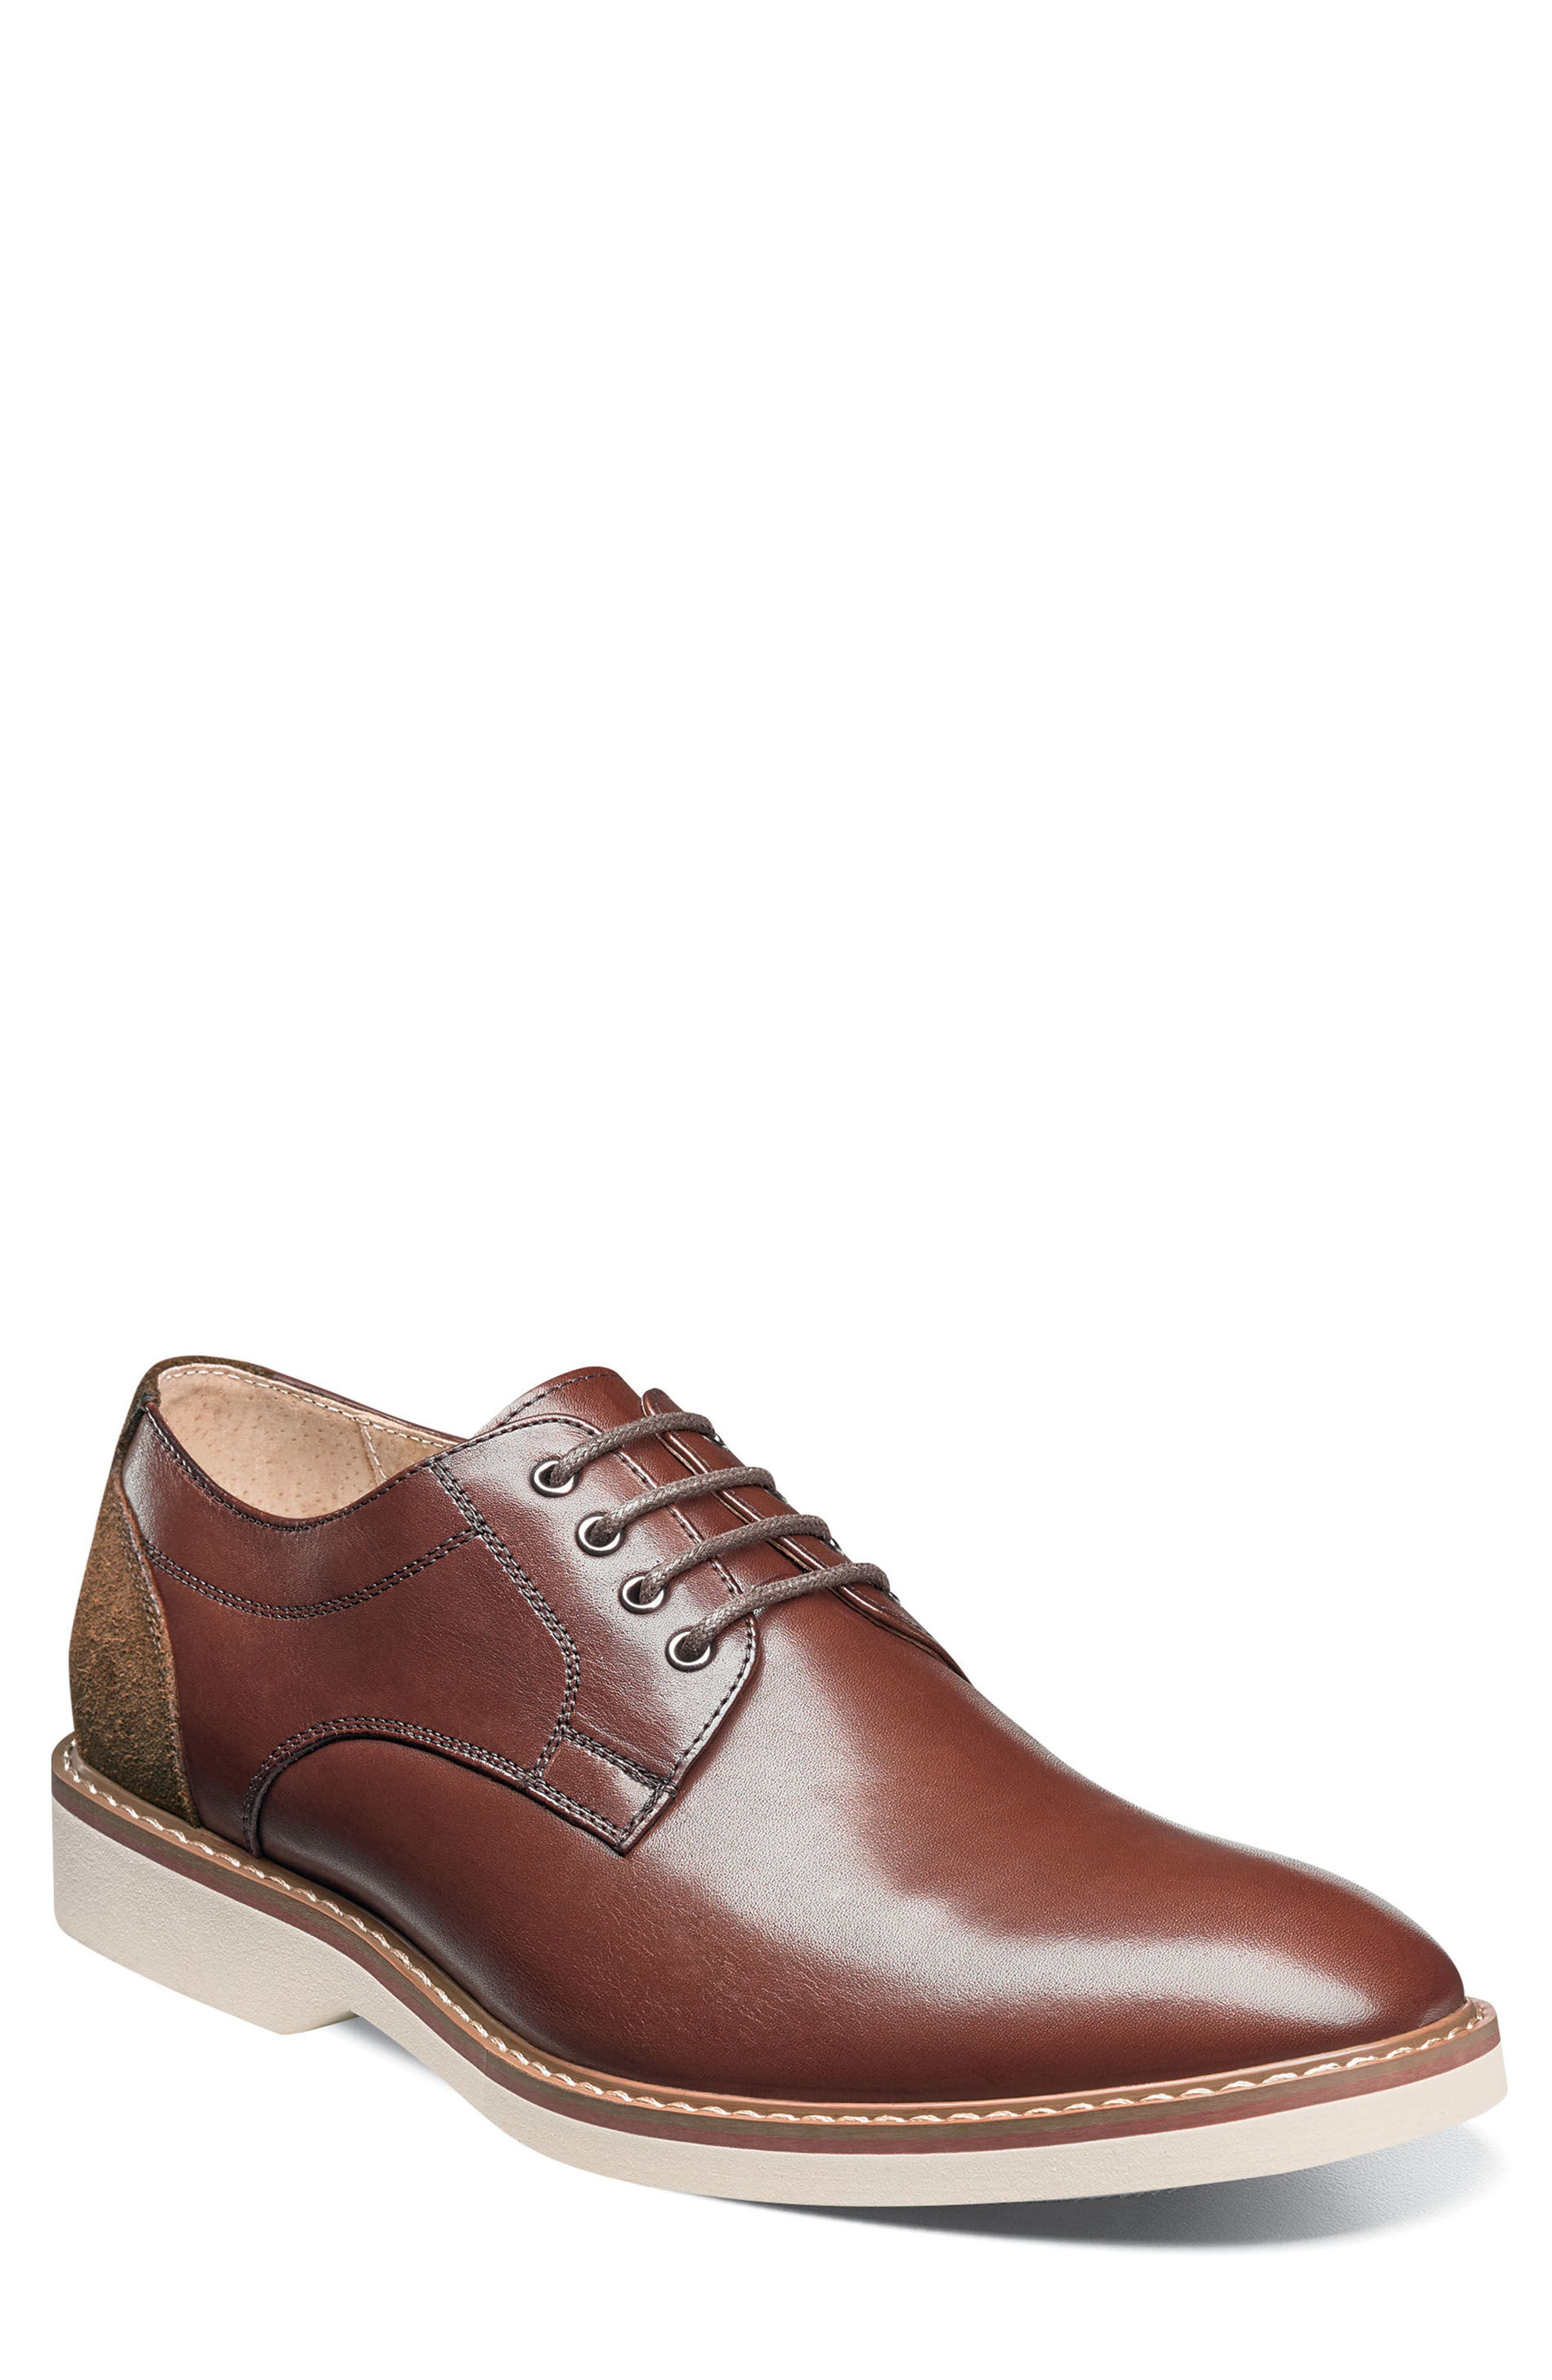 Union Buck Shoe,                         Main,                         color, Brown Leather